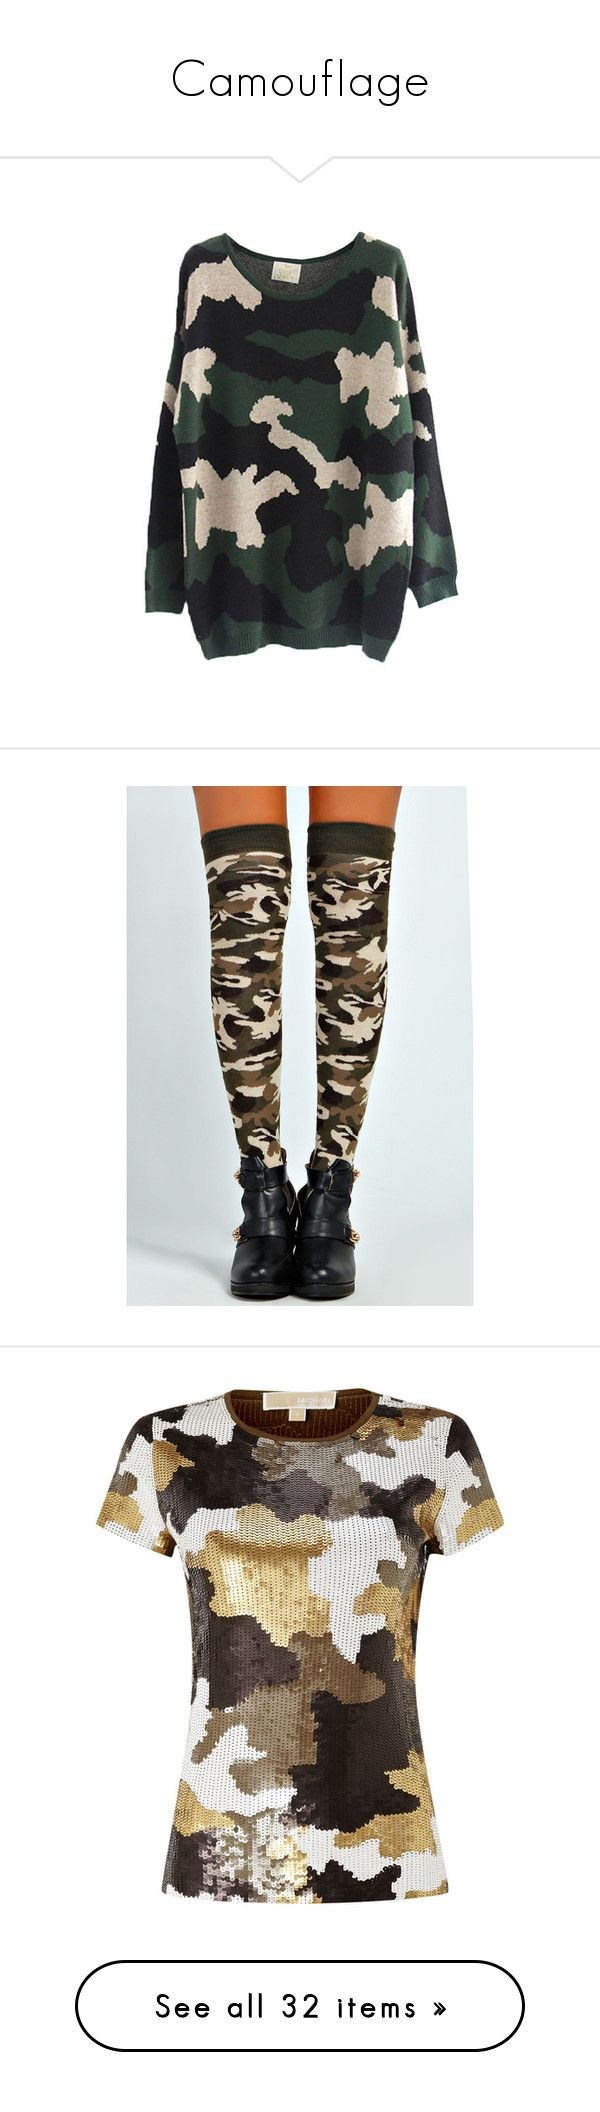 """""""Camouflage"""" by nkotbsbaby1 ❤ liked on Polyvore featuring tops, sweaters, jumpers, udobuy, camo sweaters, camo jumper, oversized tops, camouflage jumper, camouflage top and intimates"""